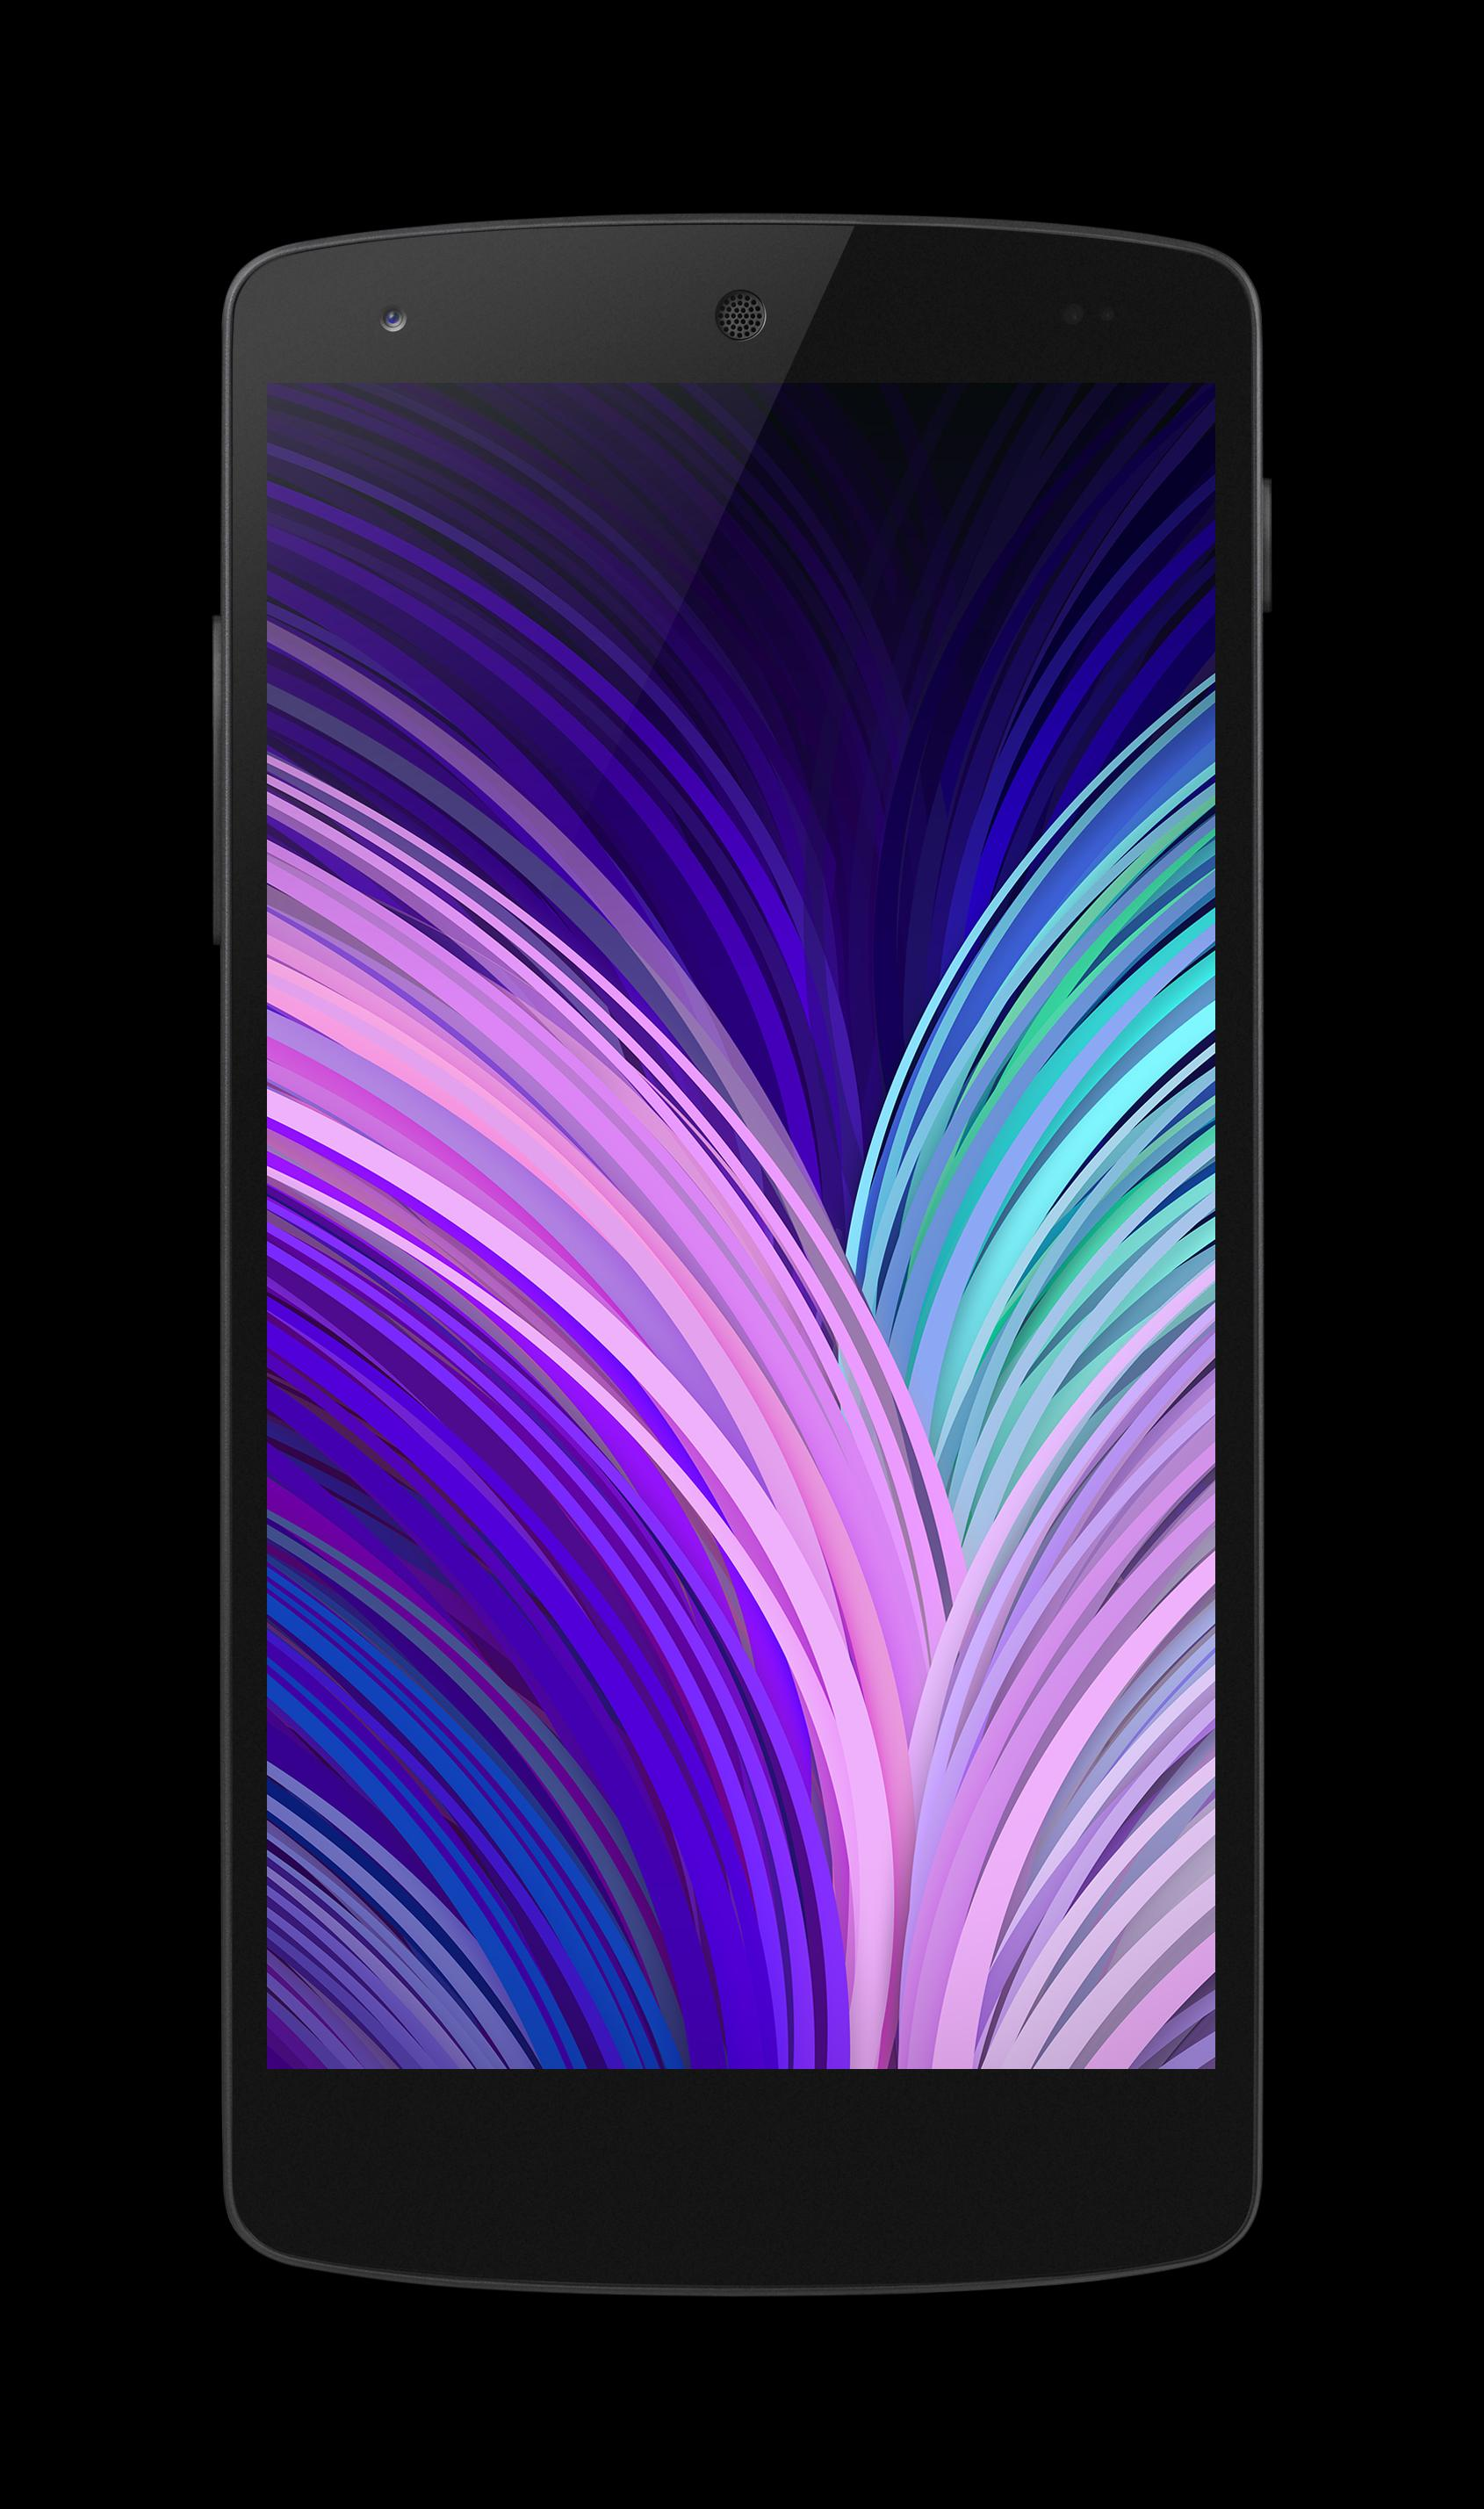 Stock Htc One M8 Wallpapers For Android Apk Download